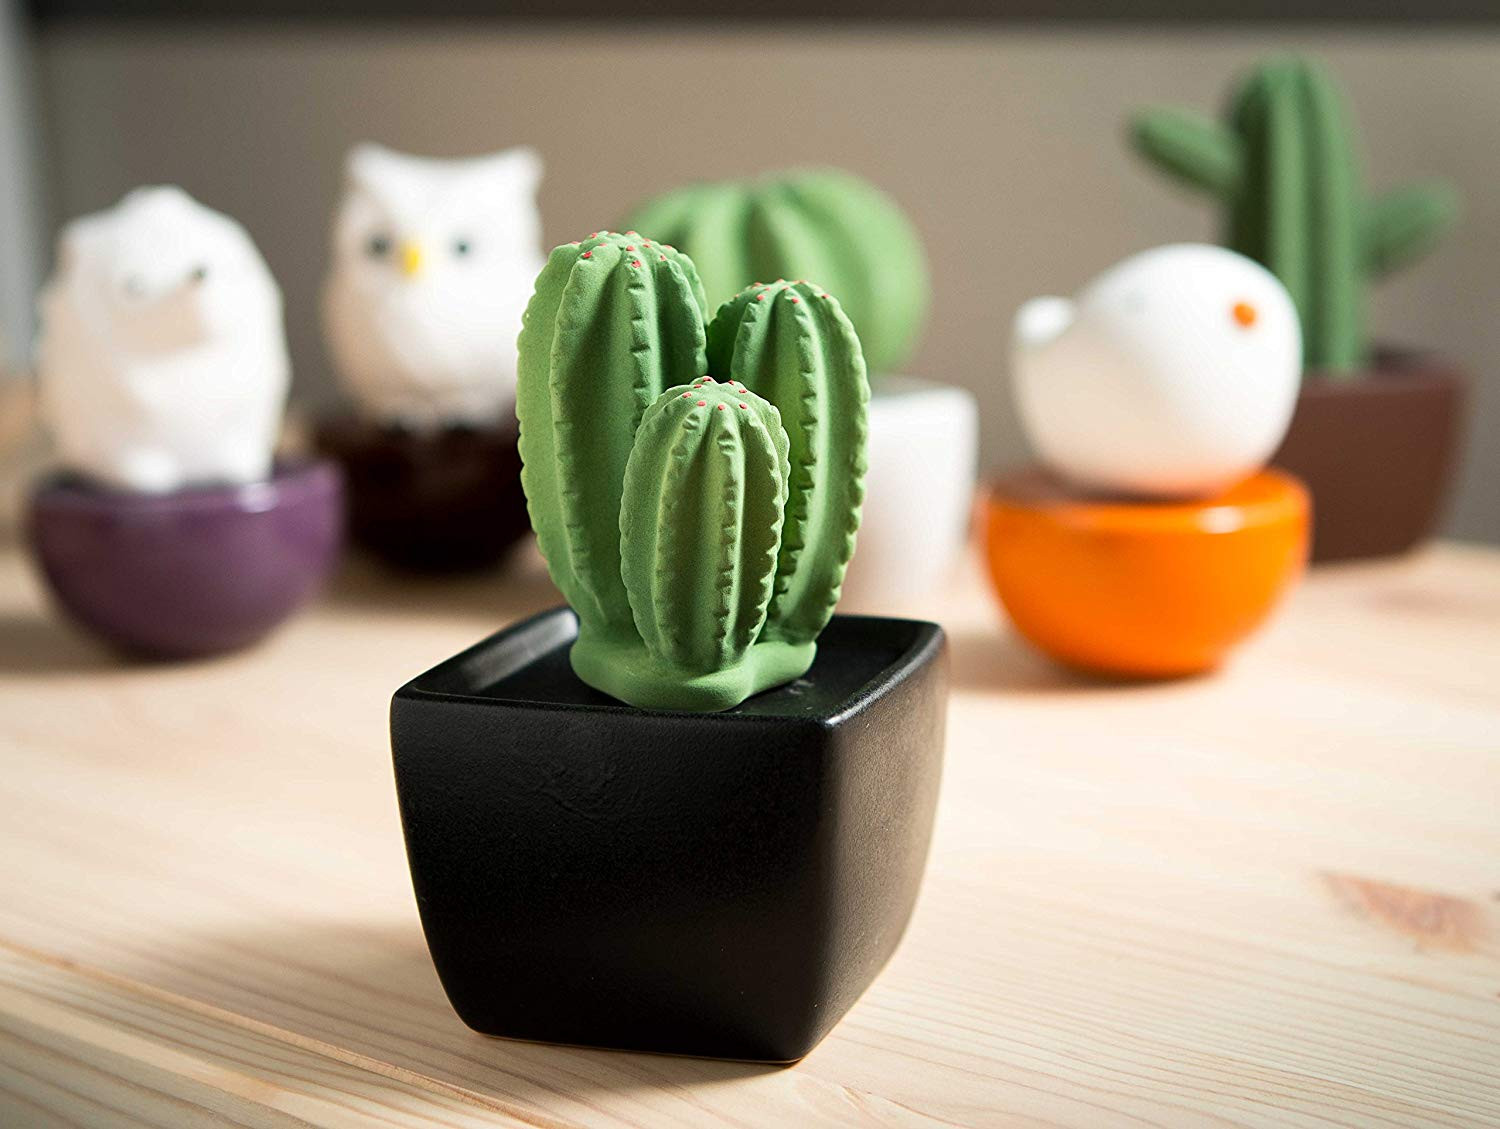 10 Cool And Fresh Cactus Themed Bathroom Decor Ideas